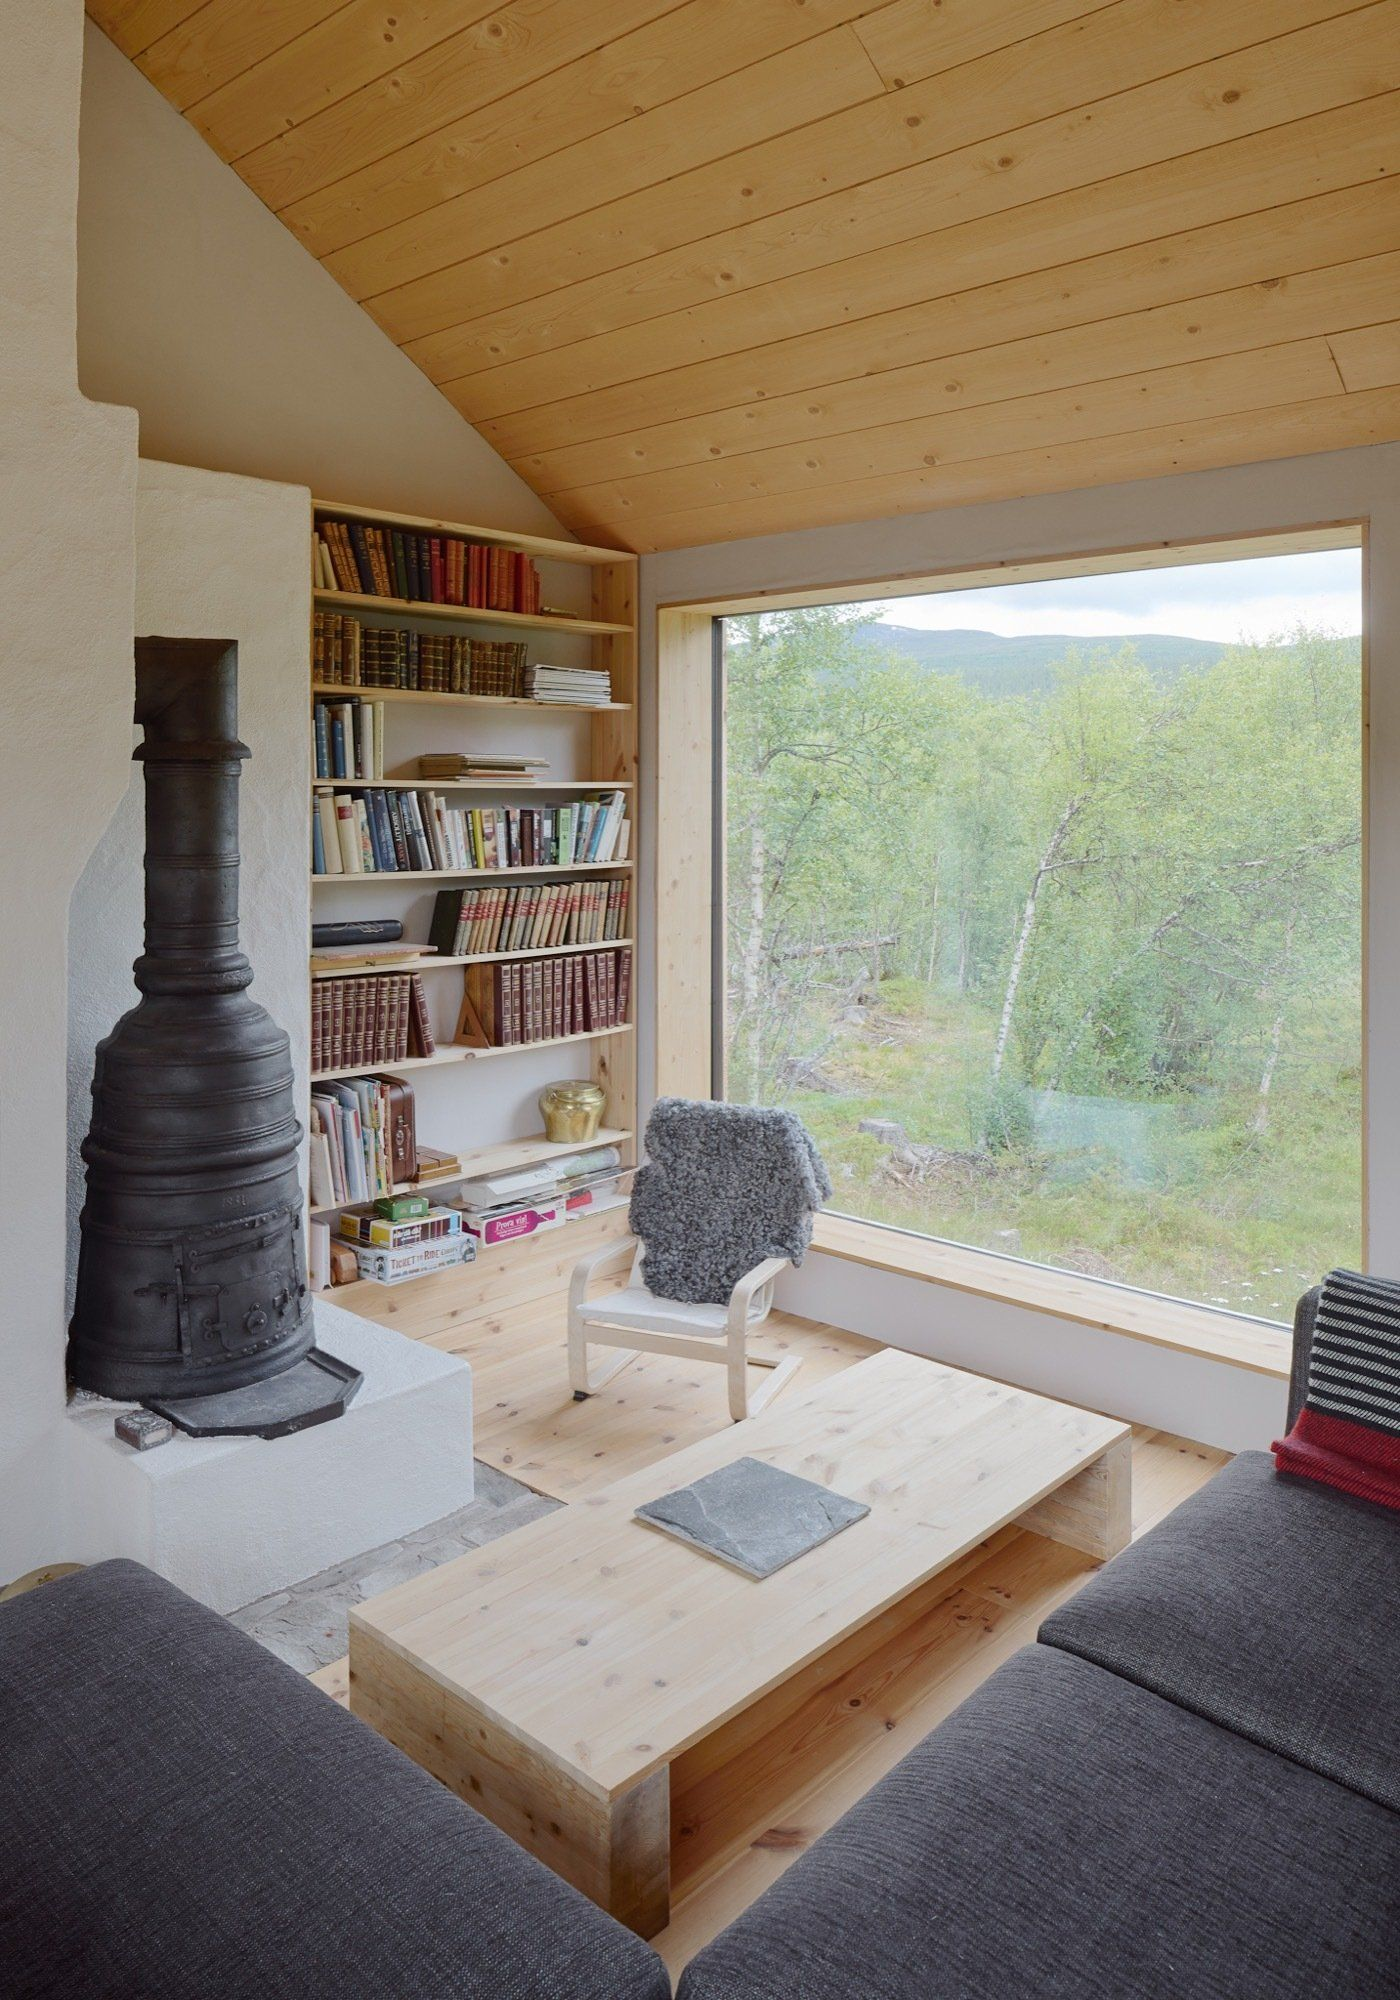 Living Room Design Concepts Unique Simple Wood Living Room With A Stove Ljungdalen Sweden  Cozy Review